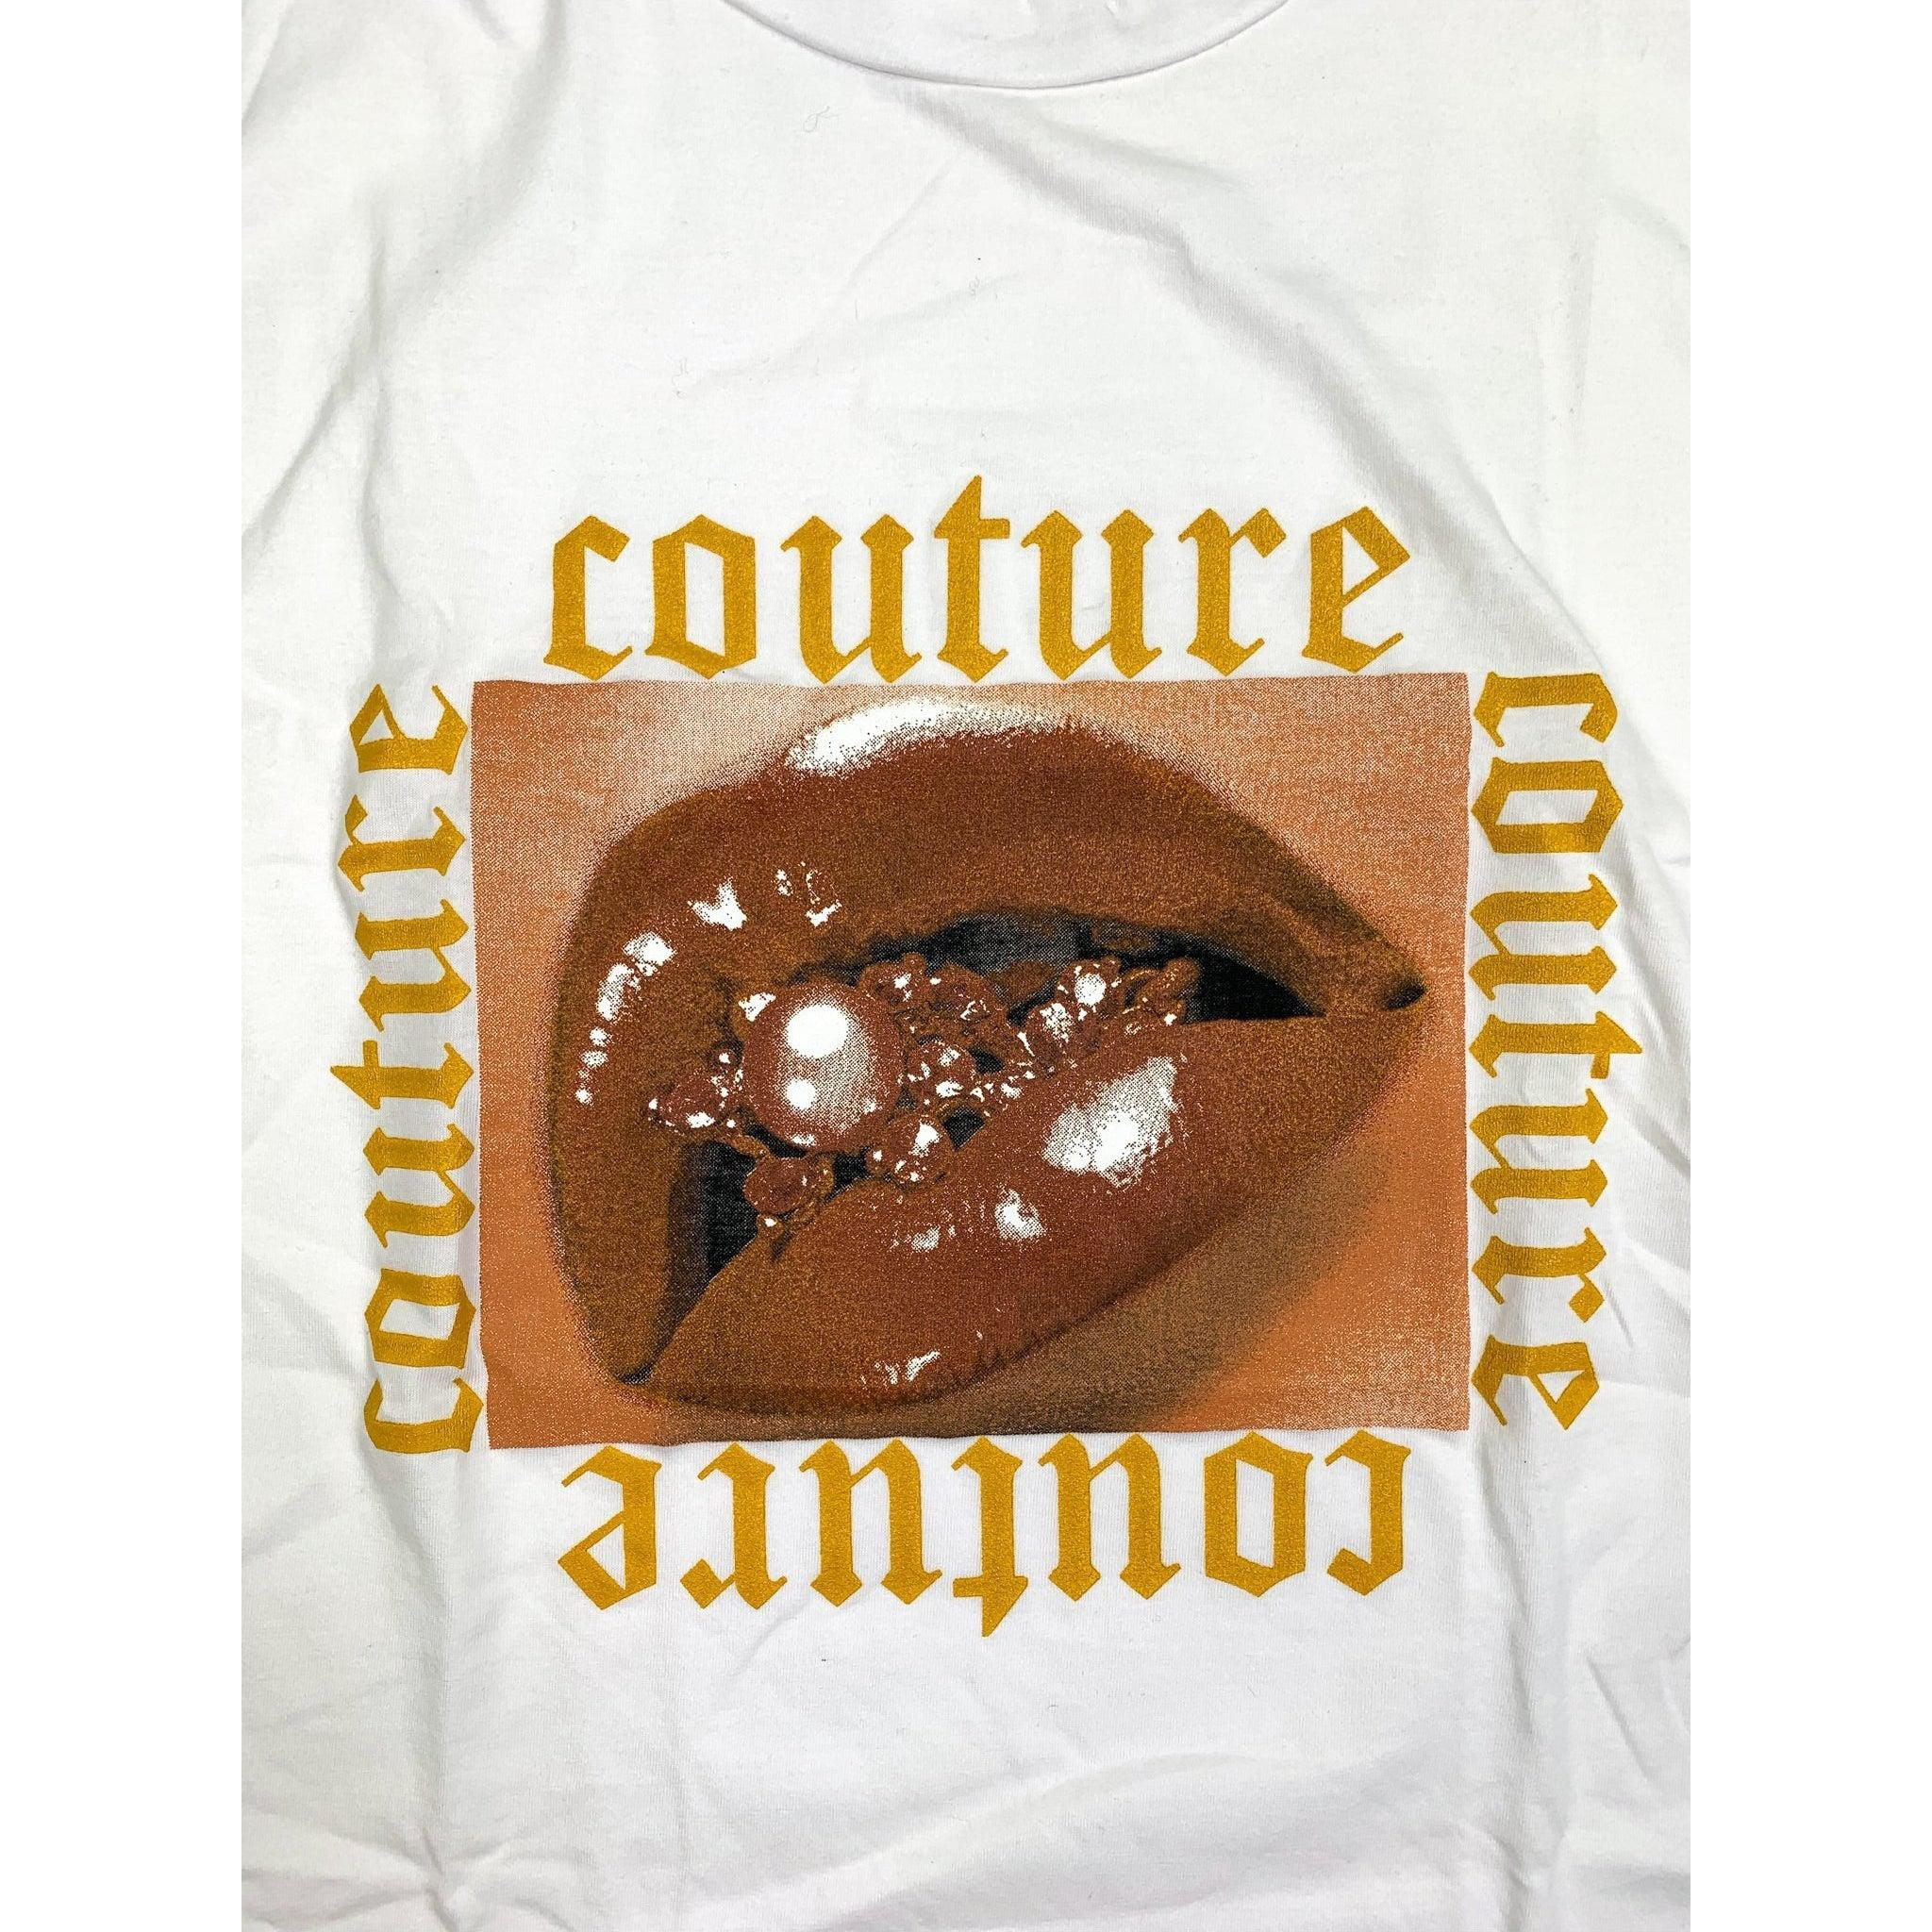 Couture candy T-shirt